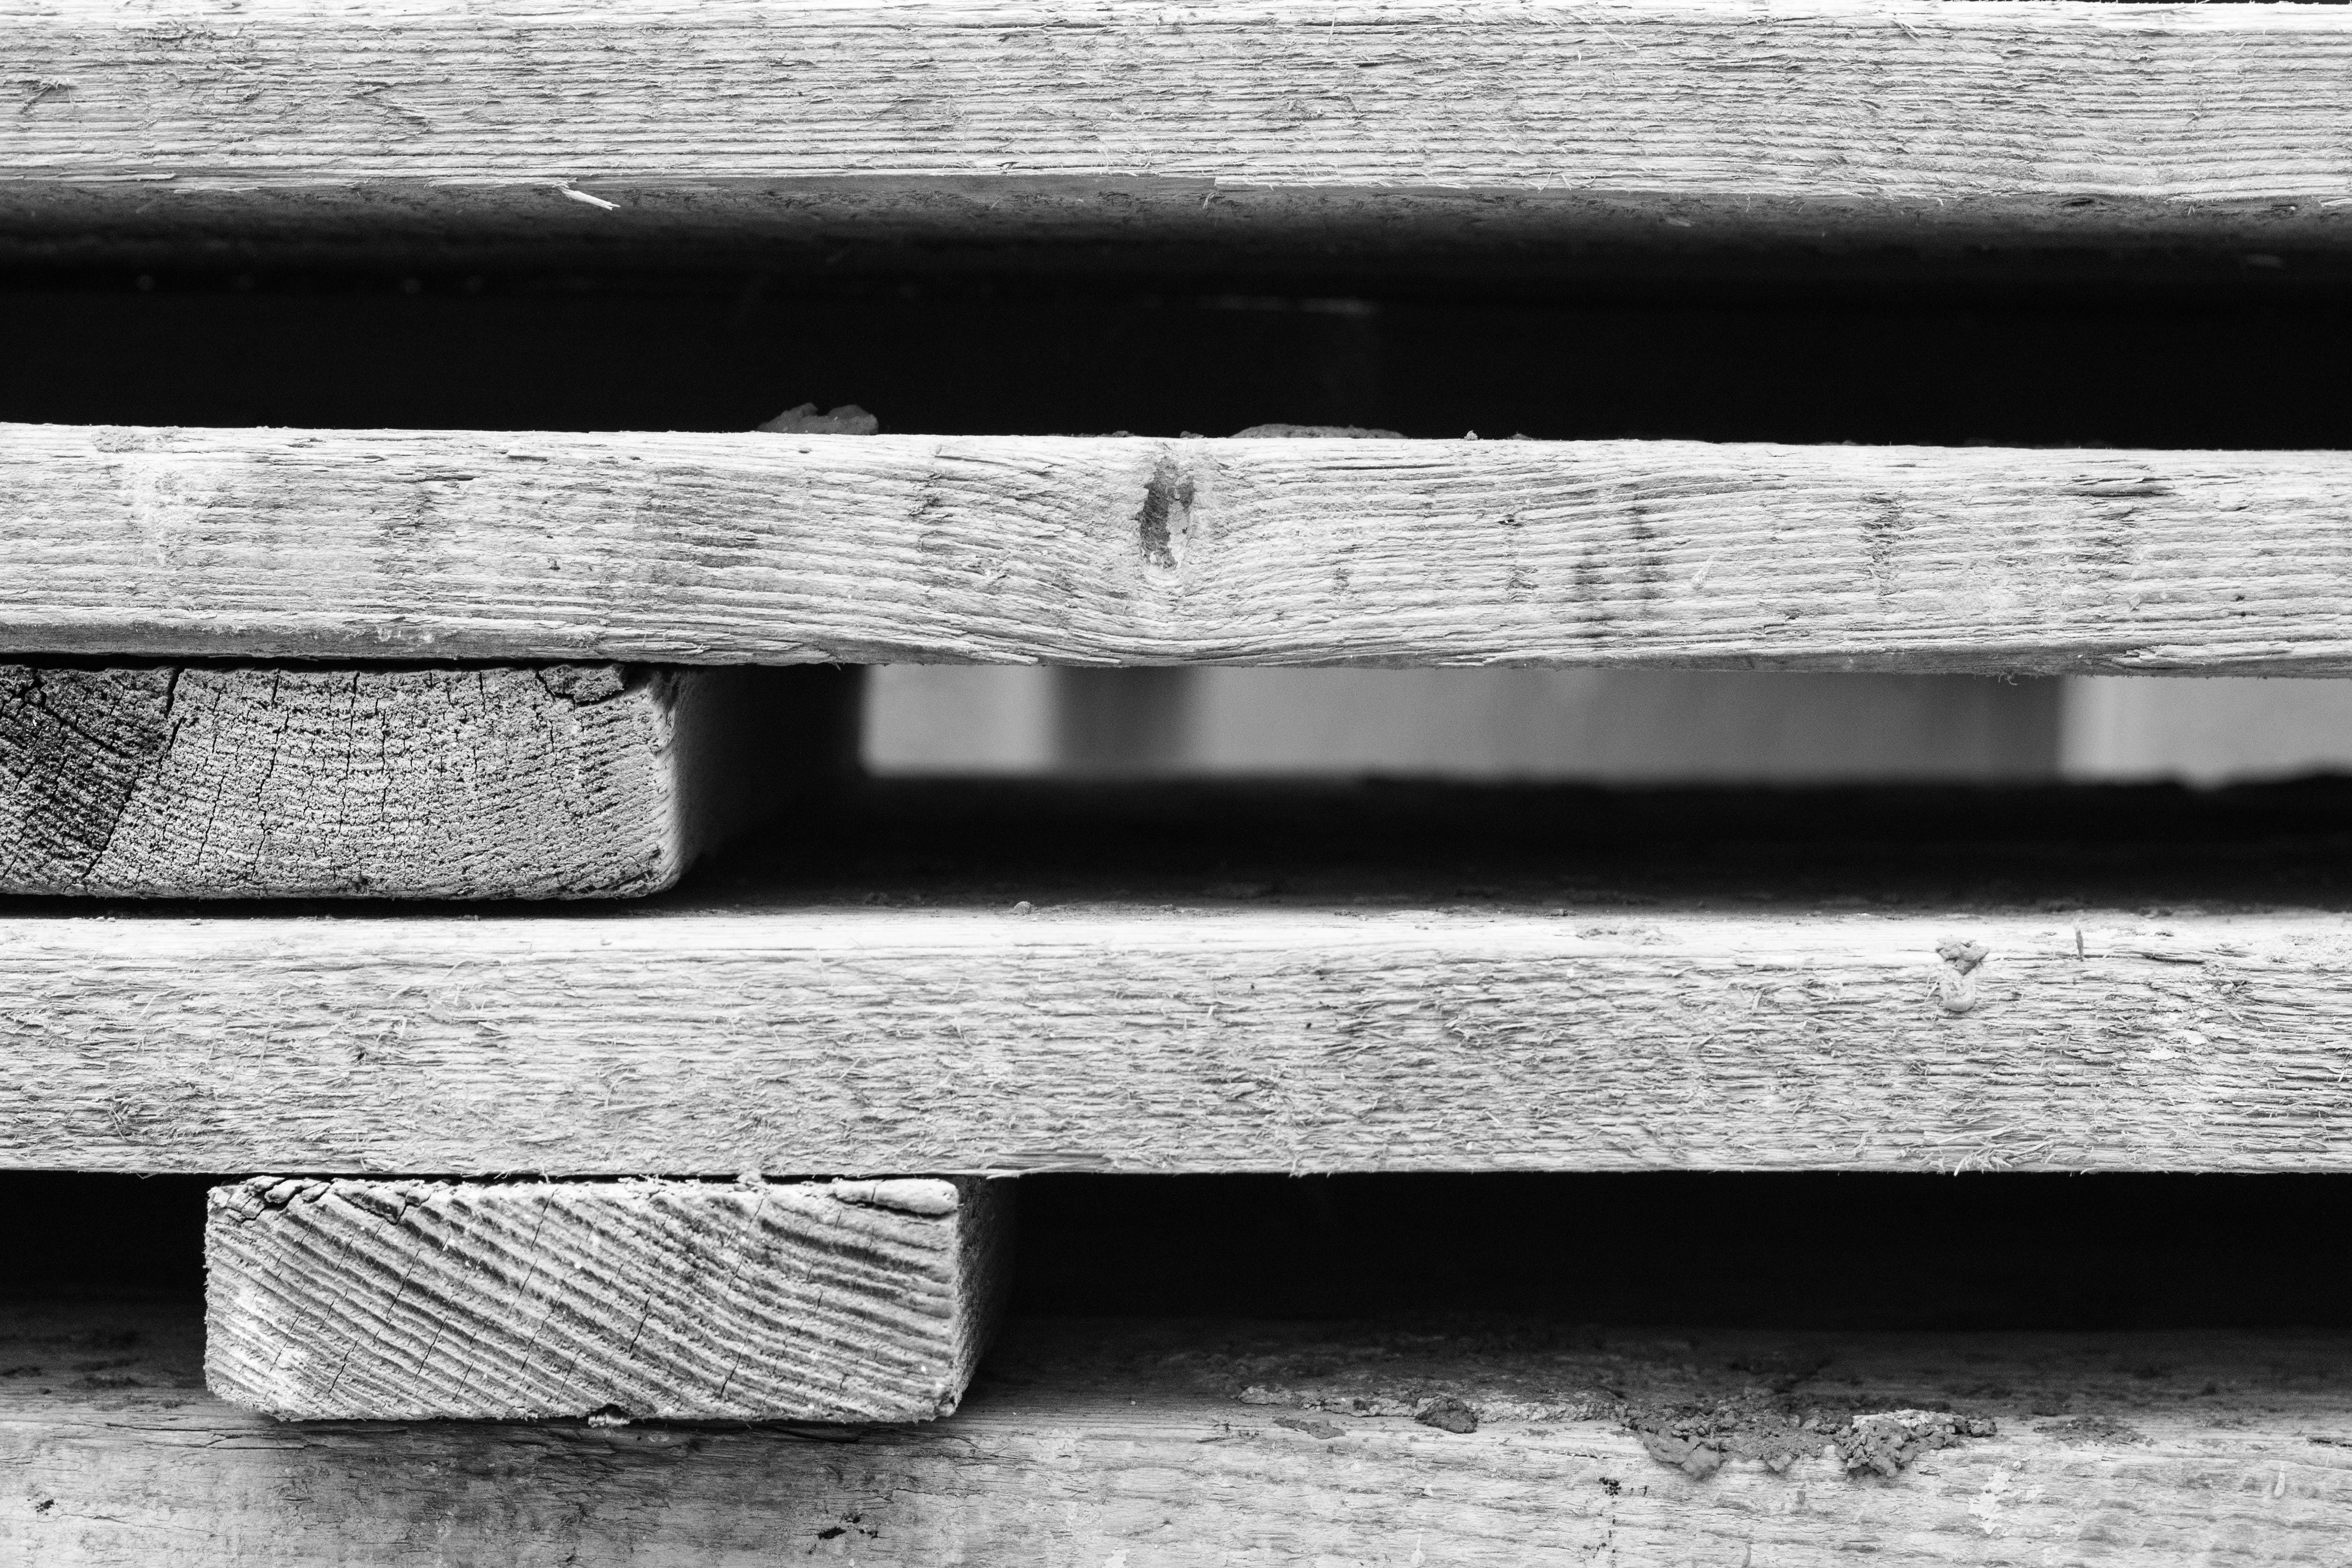 Grayscale Photo of Wooden Pallets